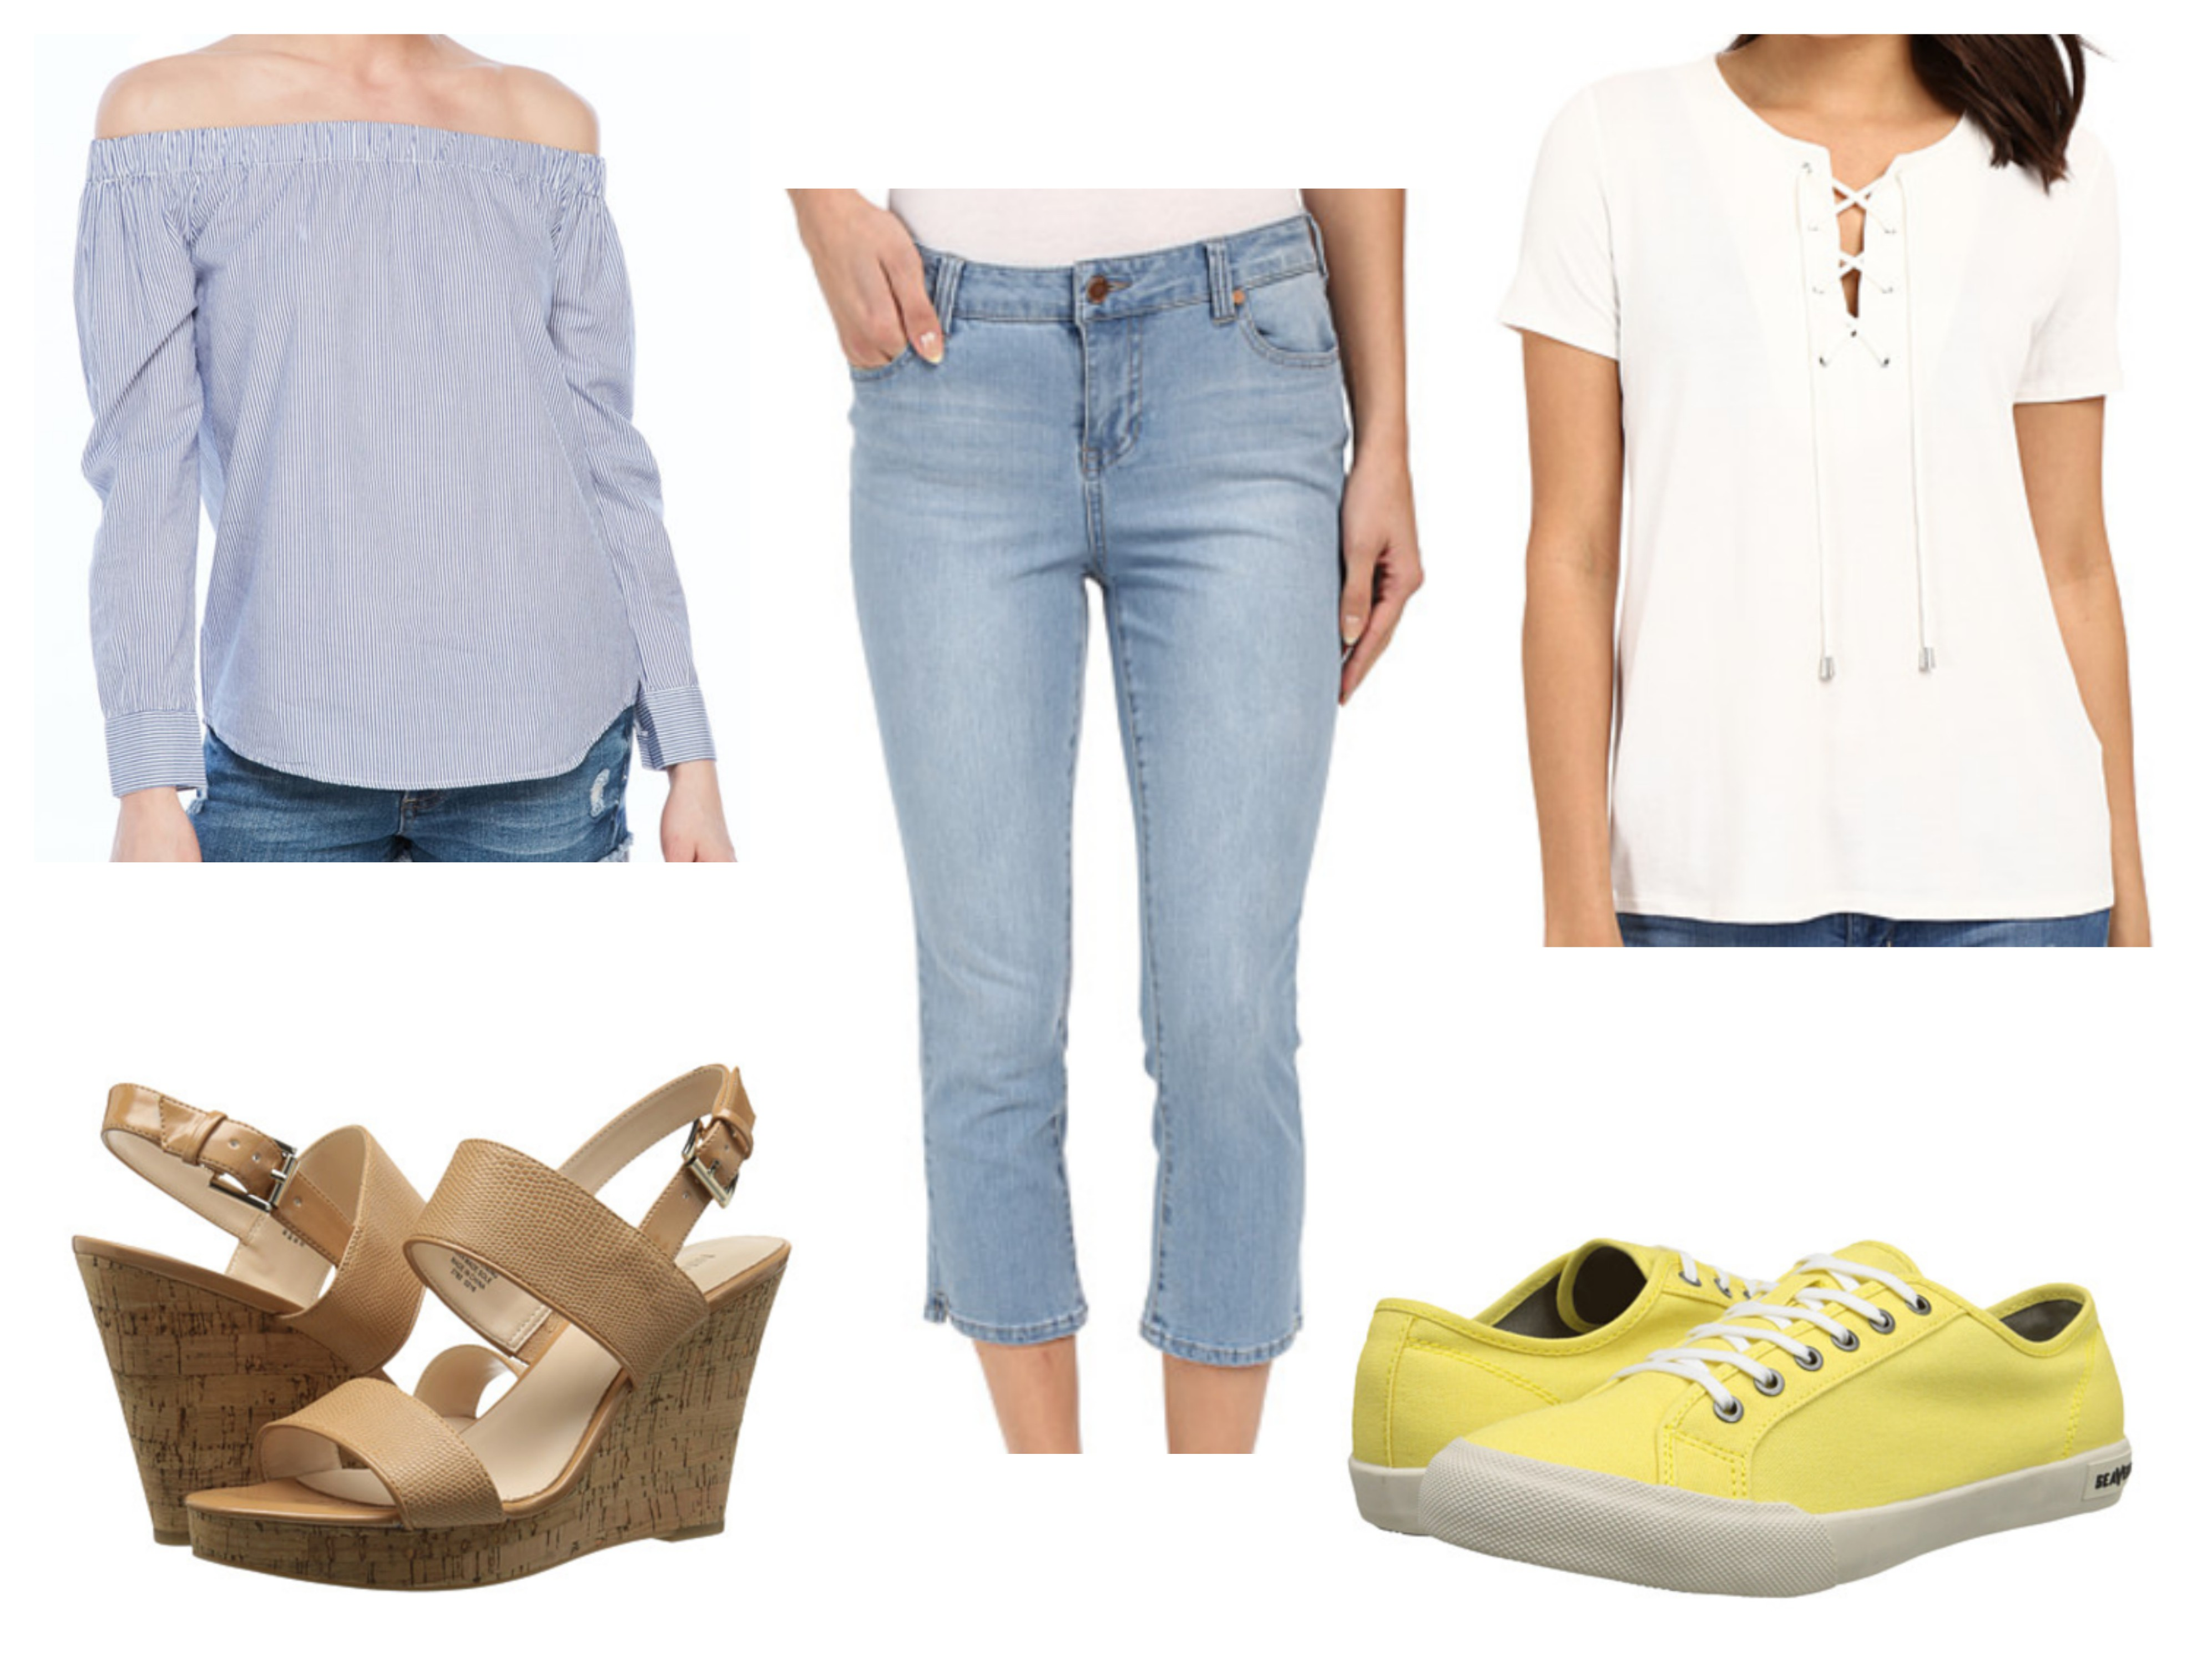 Design your own t shirt liverpool - For This Next Fix I Focused On Current Trends And Creating A Casual Look Pair The Rd Style Off The Shoulder Top With The Liverpool Capris And Nine West